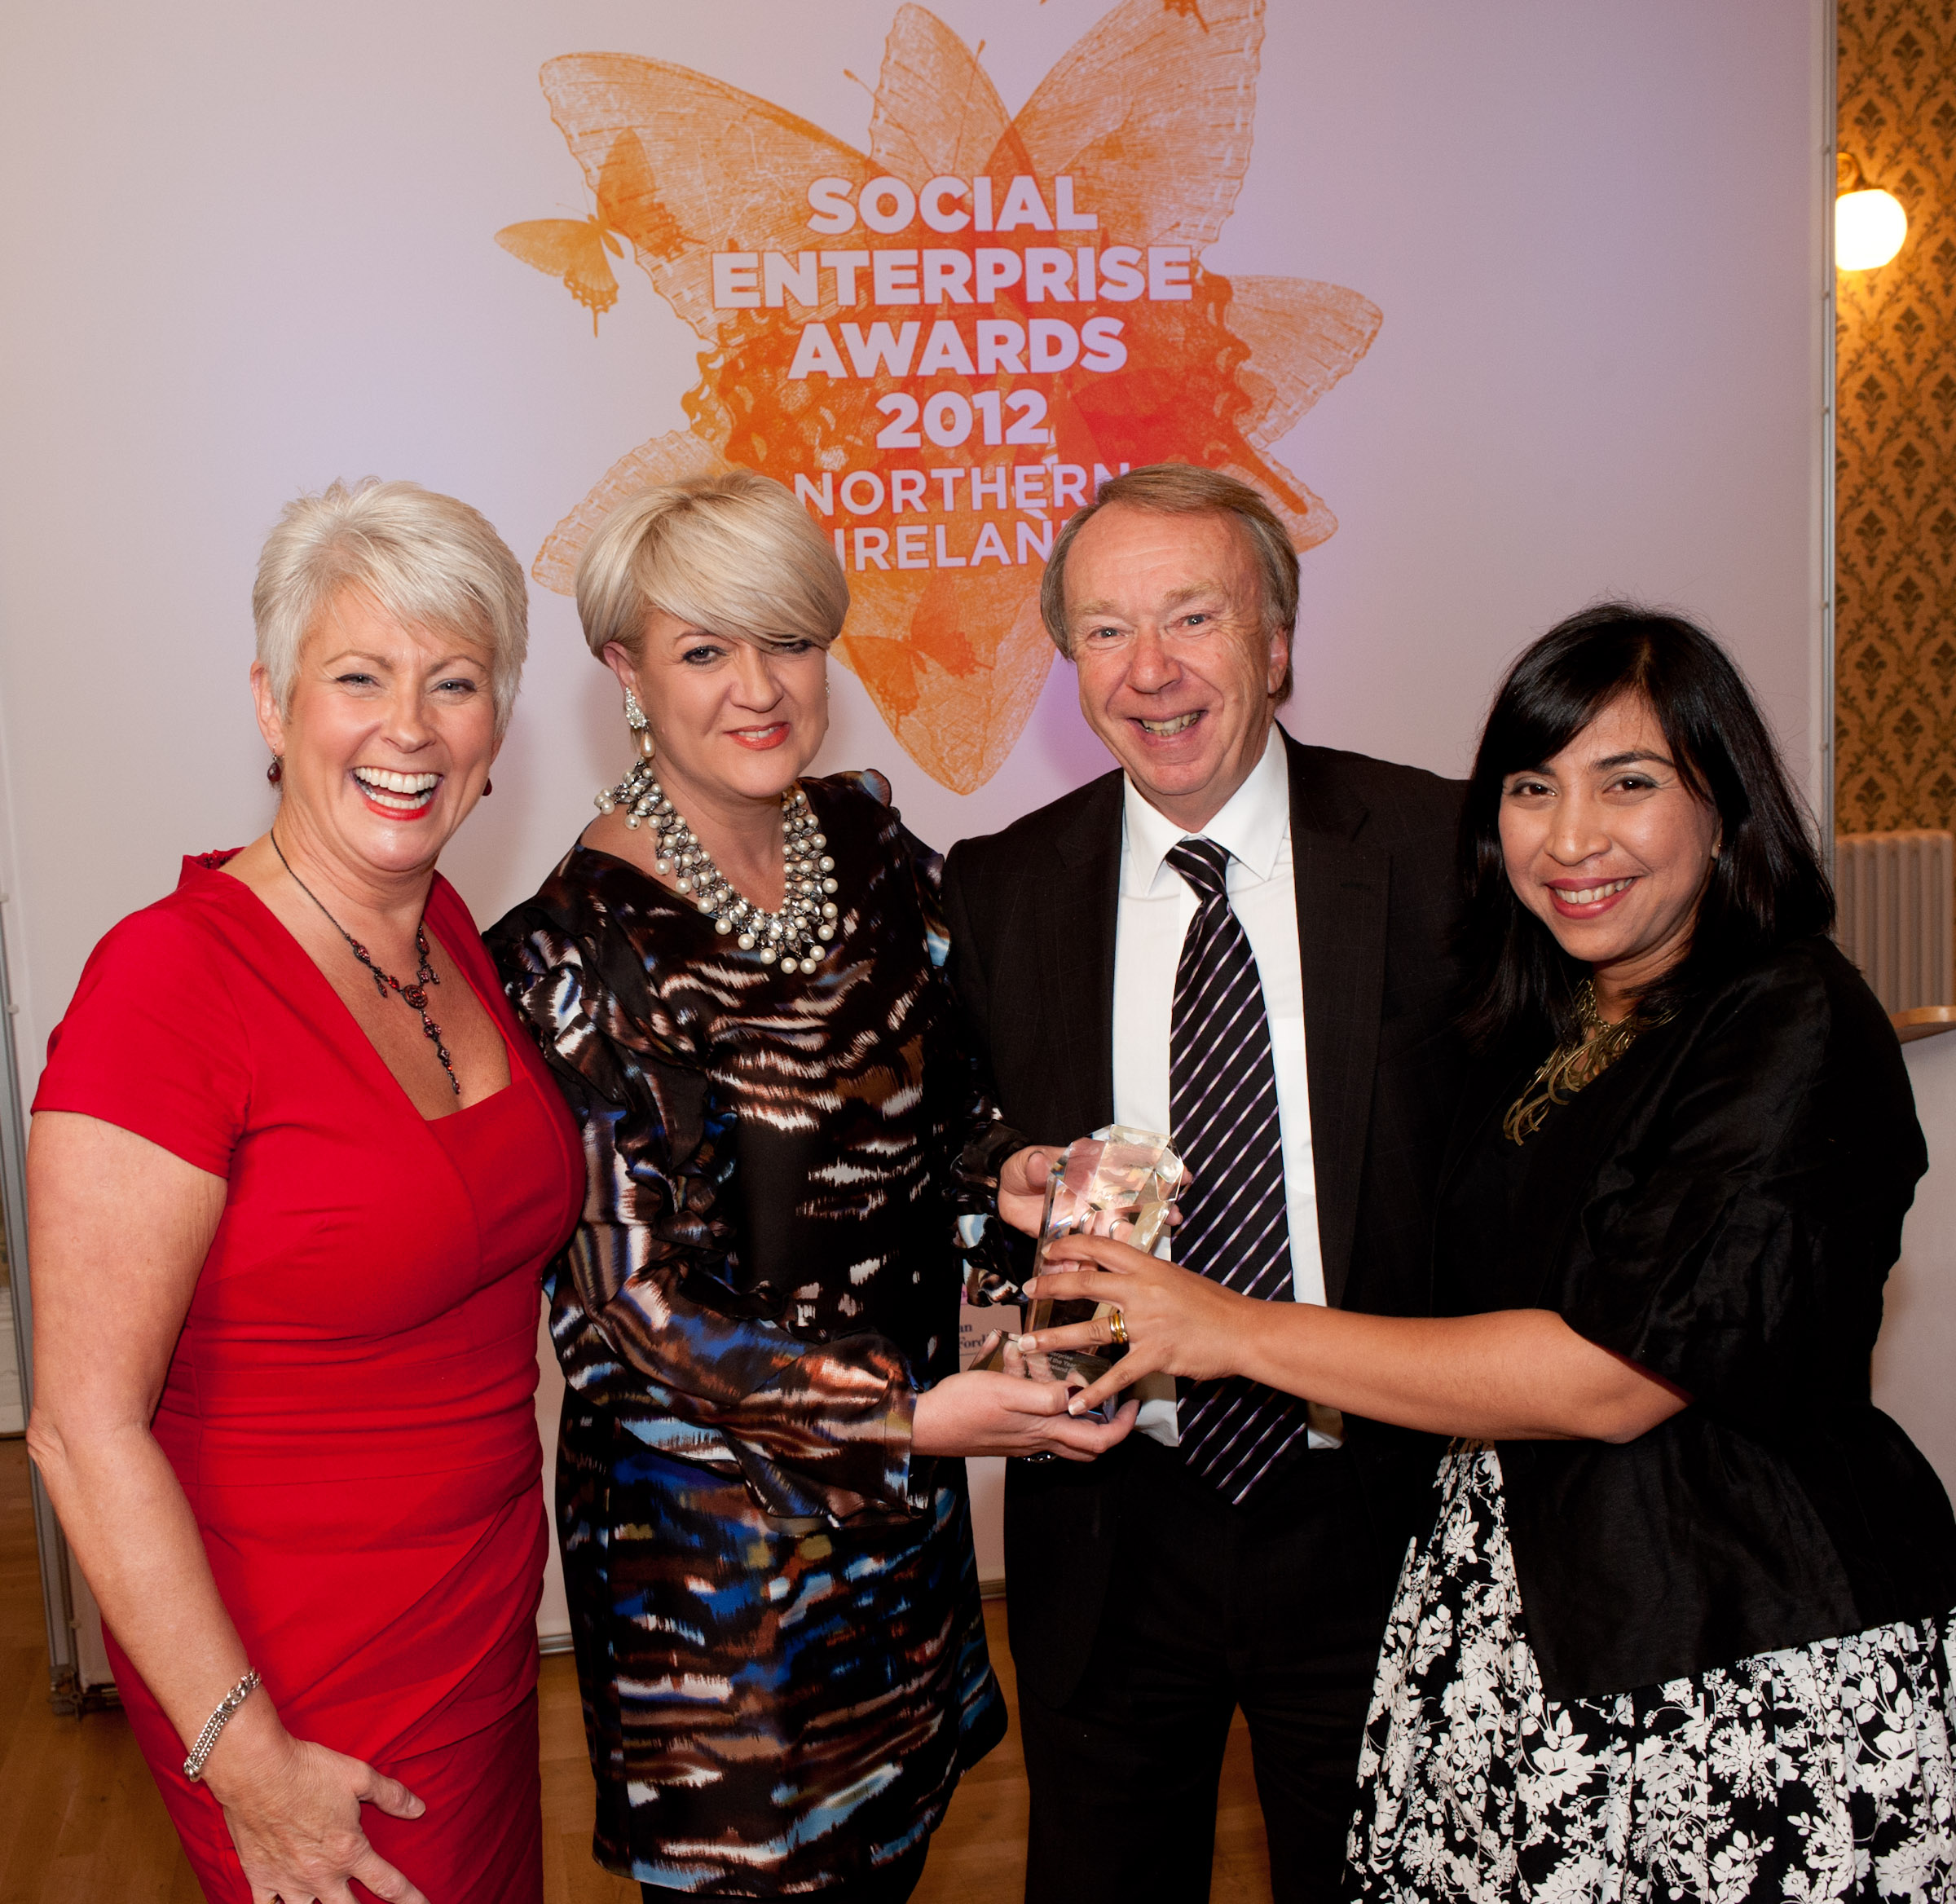 Lloyds TSB Foundation for NI recognised for supporting Social Enterprises